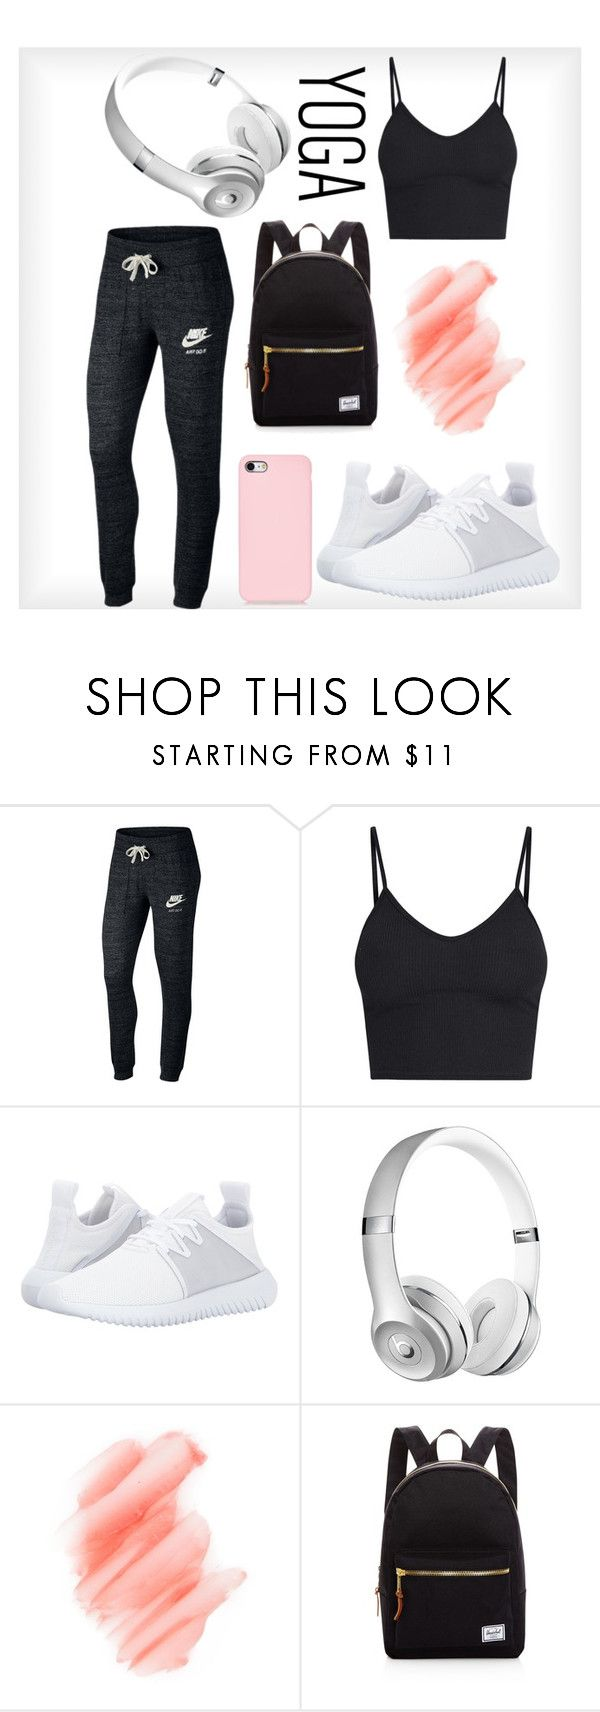 """"""""""" by bertahb ❤ liked on Polyvore featuring NIKE, adidas Originals, Birchrose + Co. and Herschel Supply Co."""